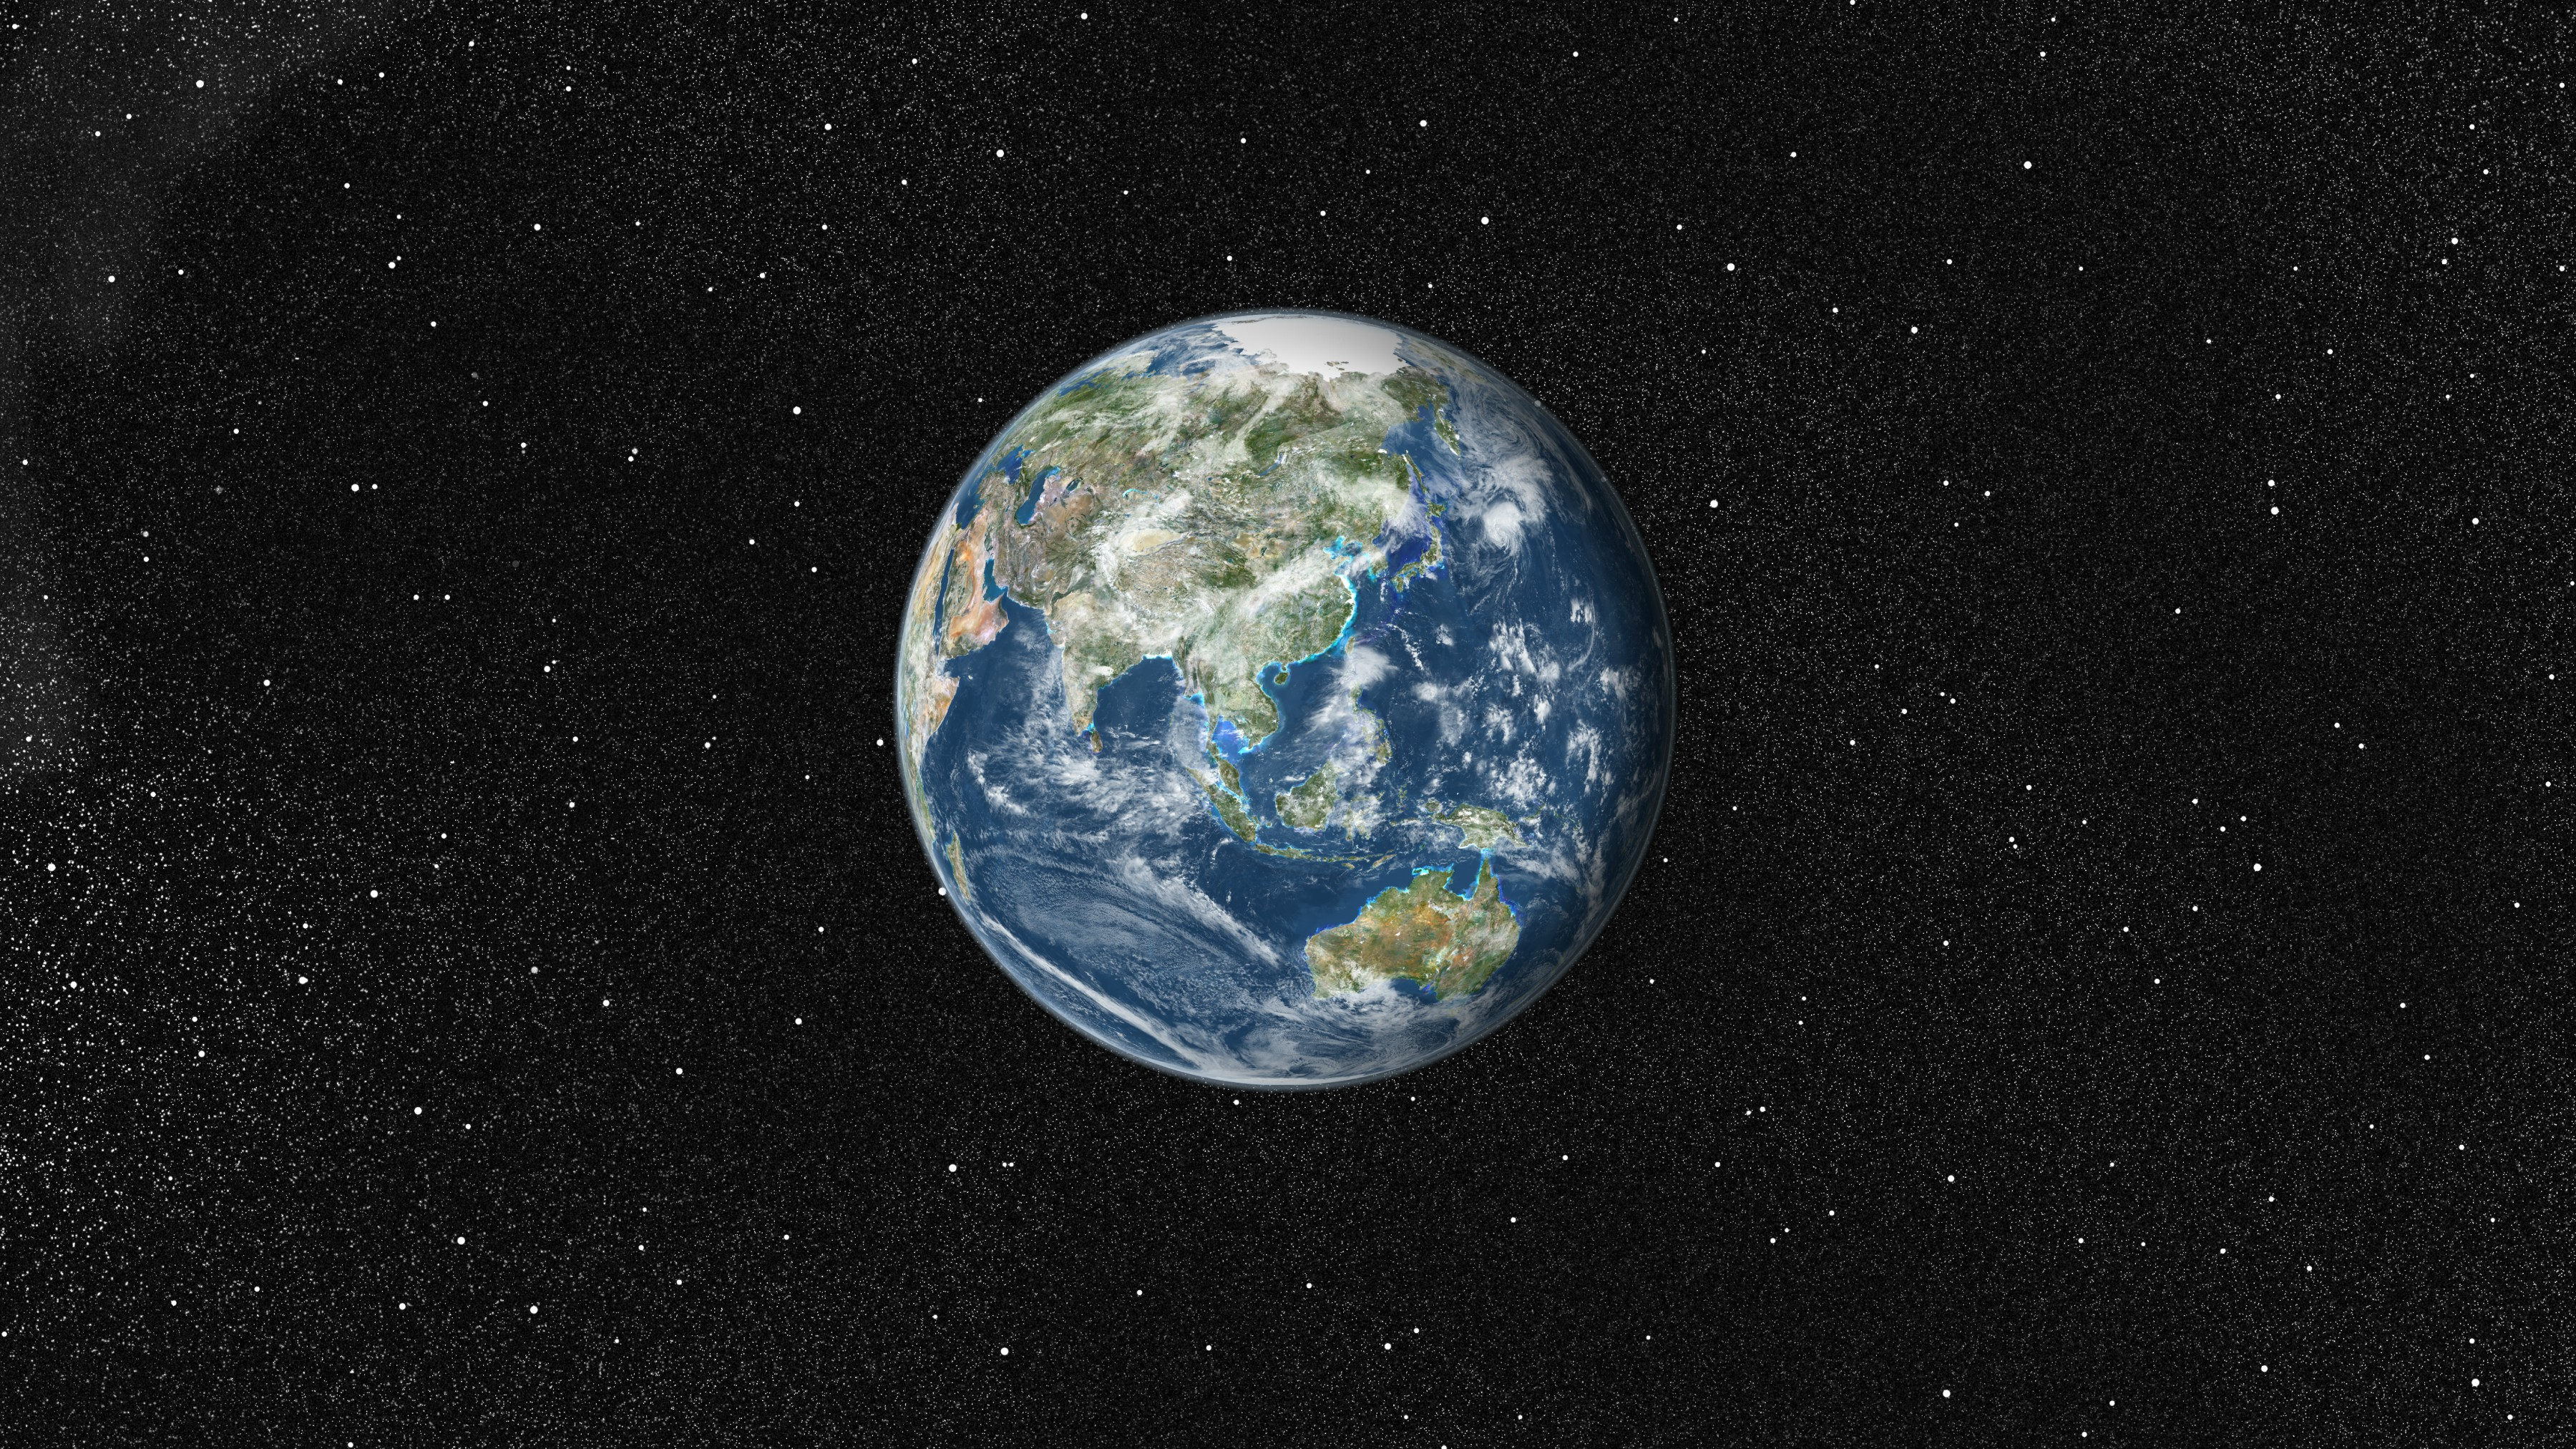 Geno smith is dealing in flat earth nonsense unfortunately si stopboris Choice Image